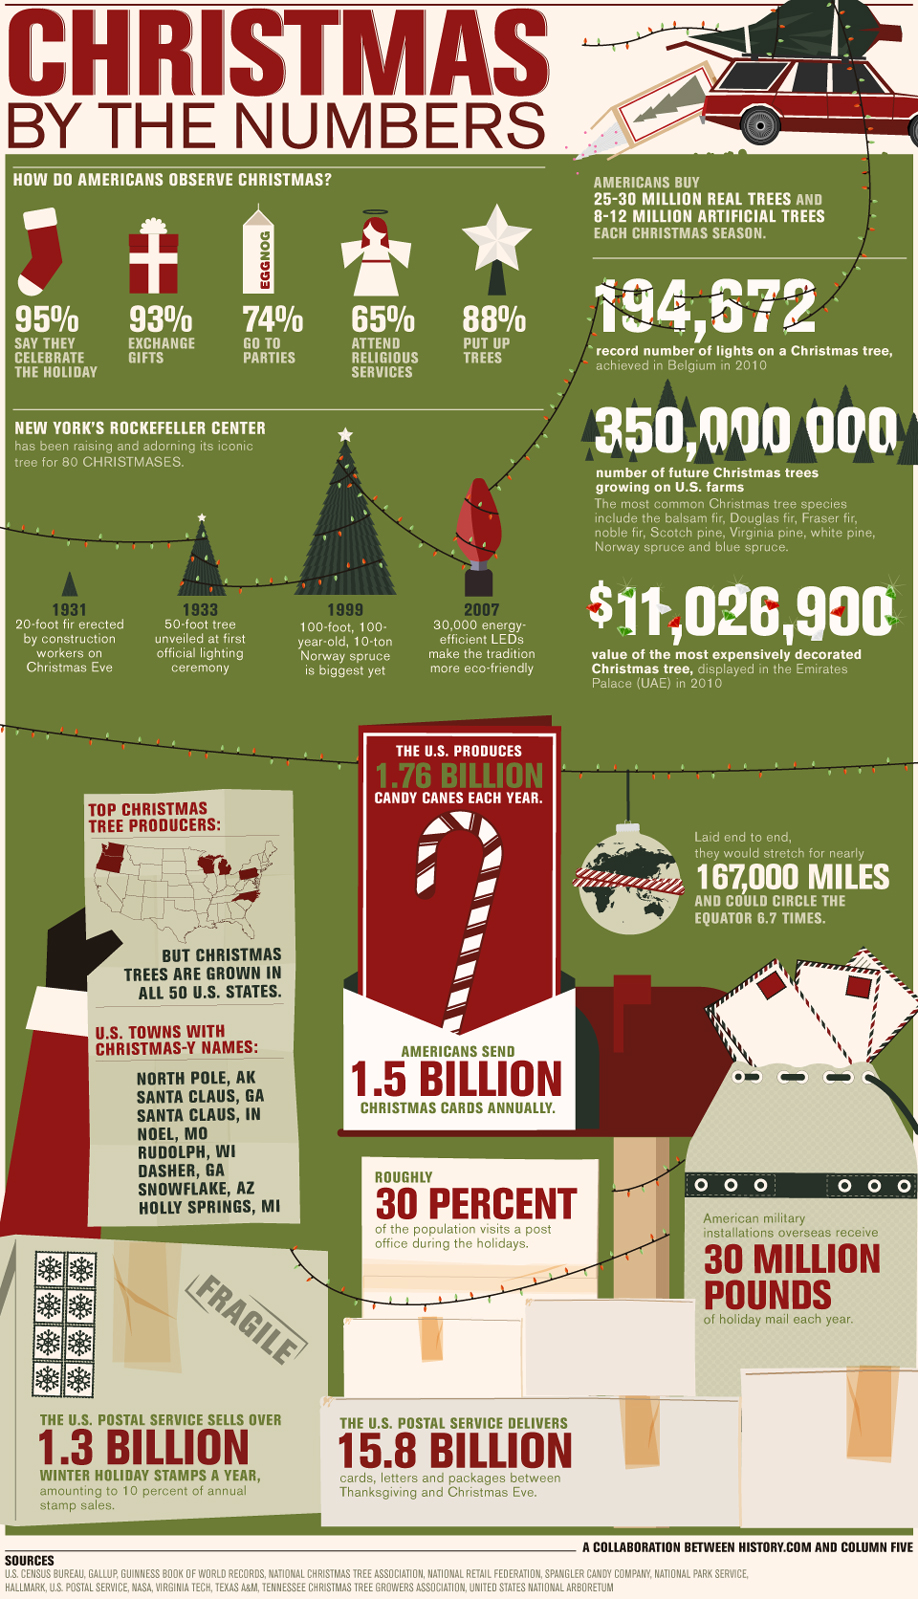 history-channel-infographic-christmas-by-the-numbers